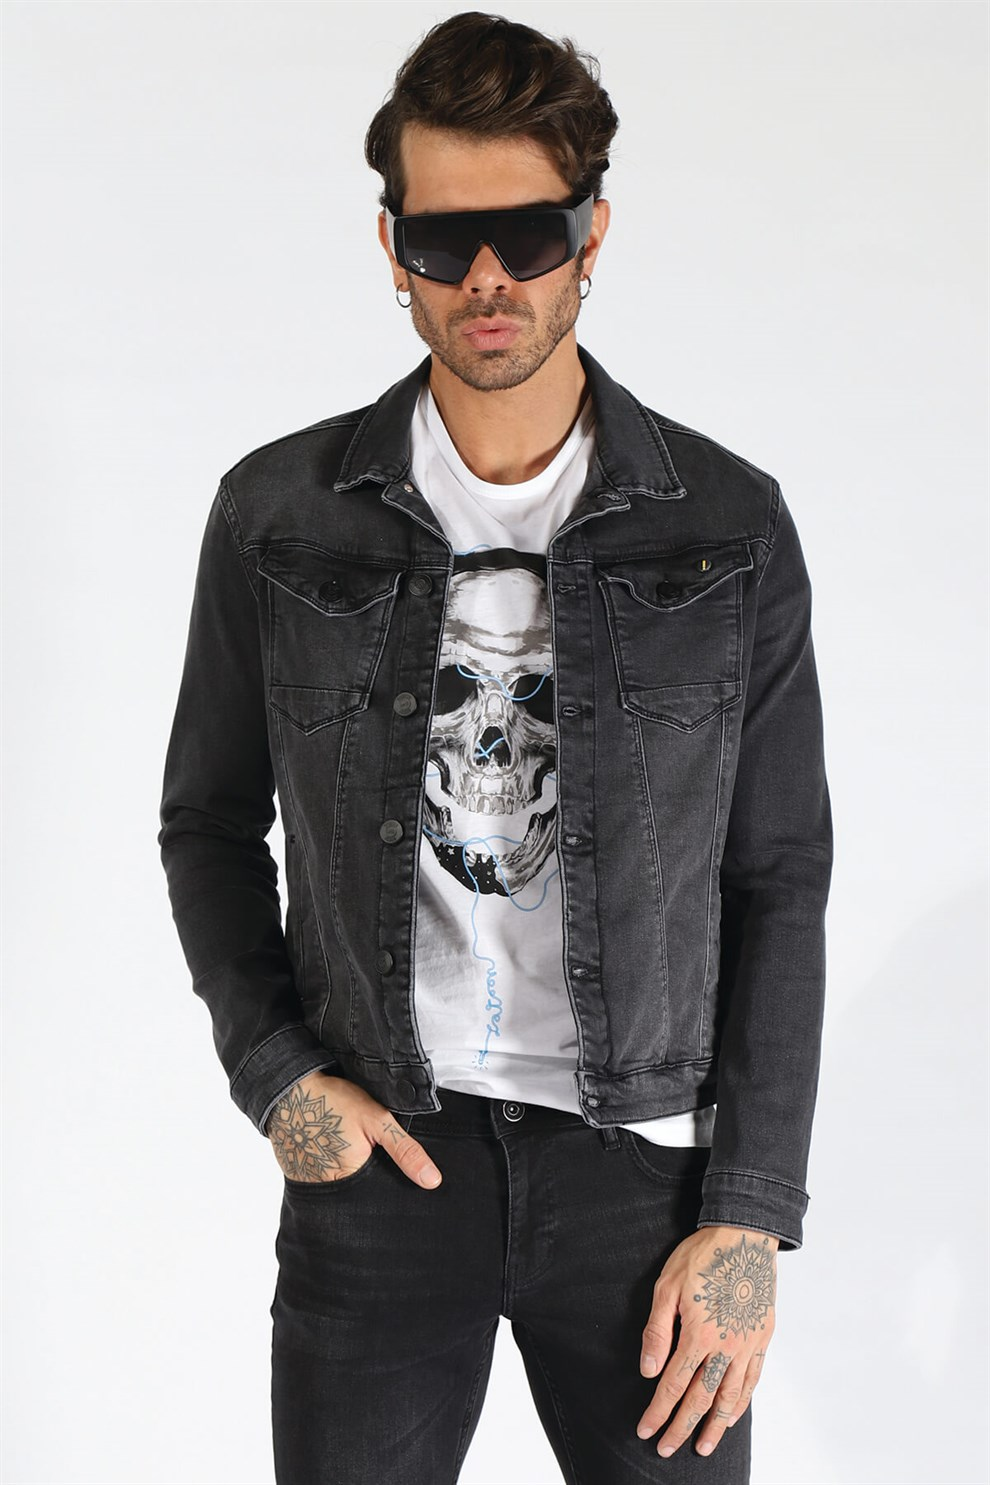 Latest style men's jacket (jacket)